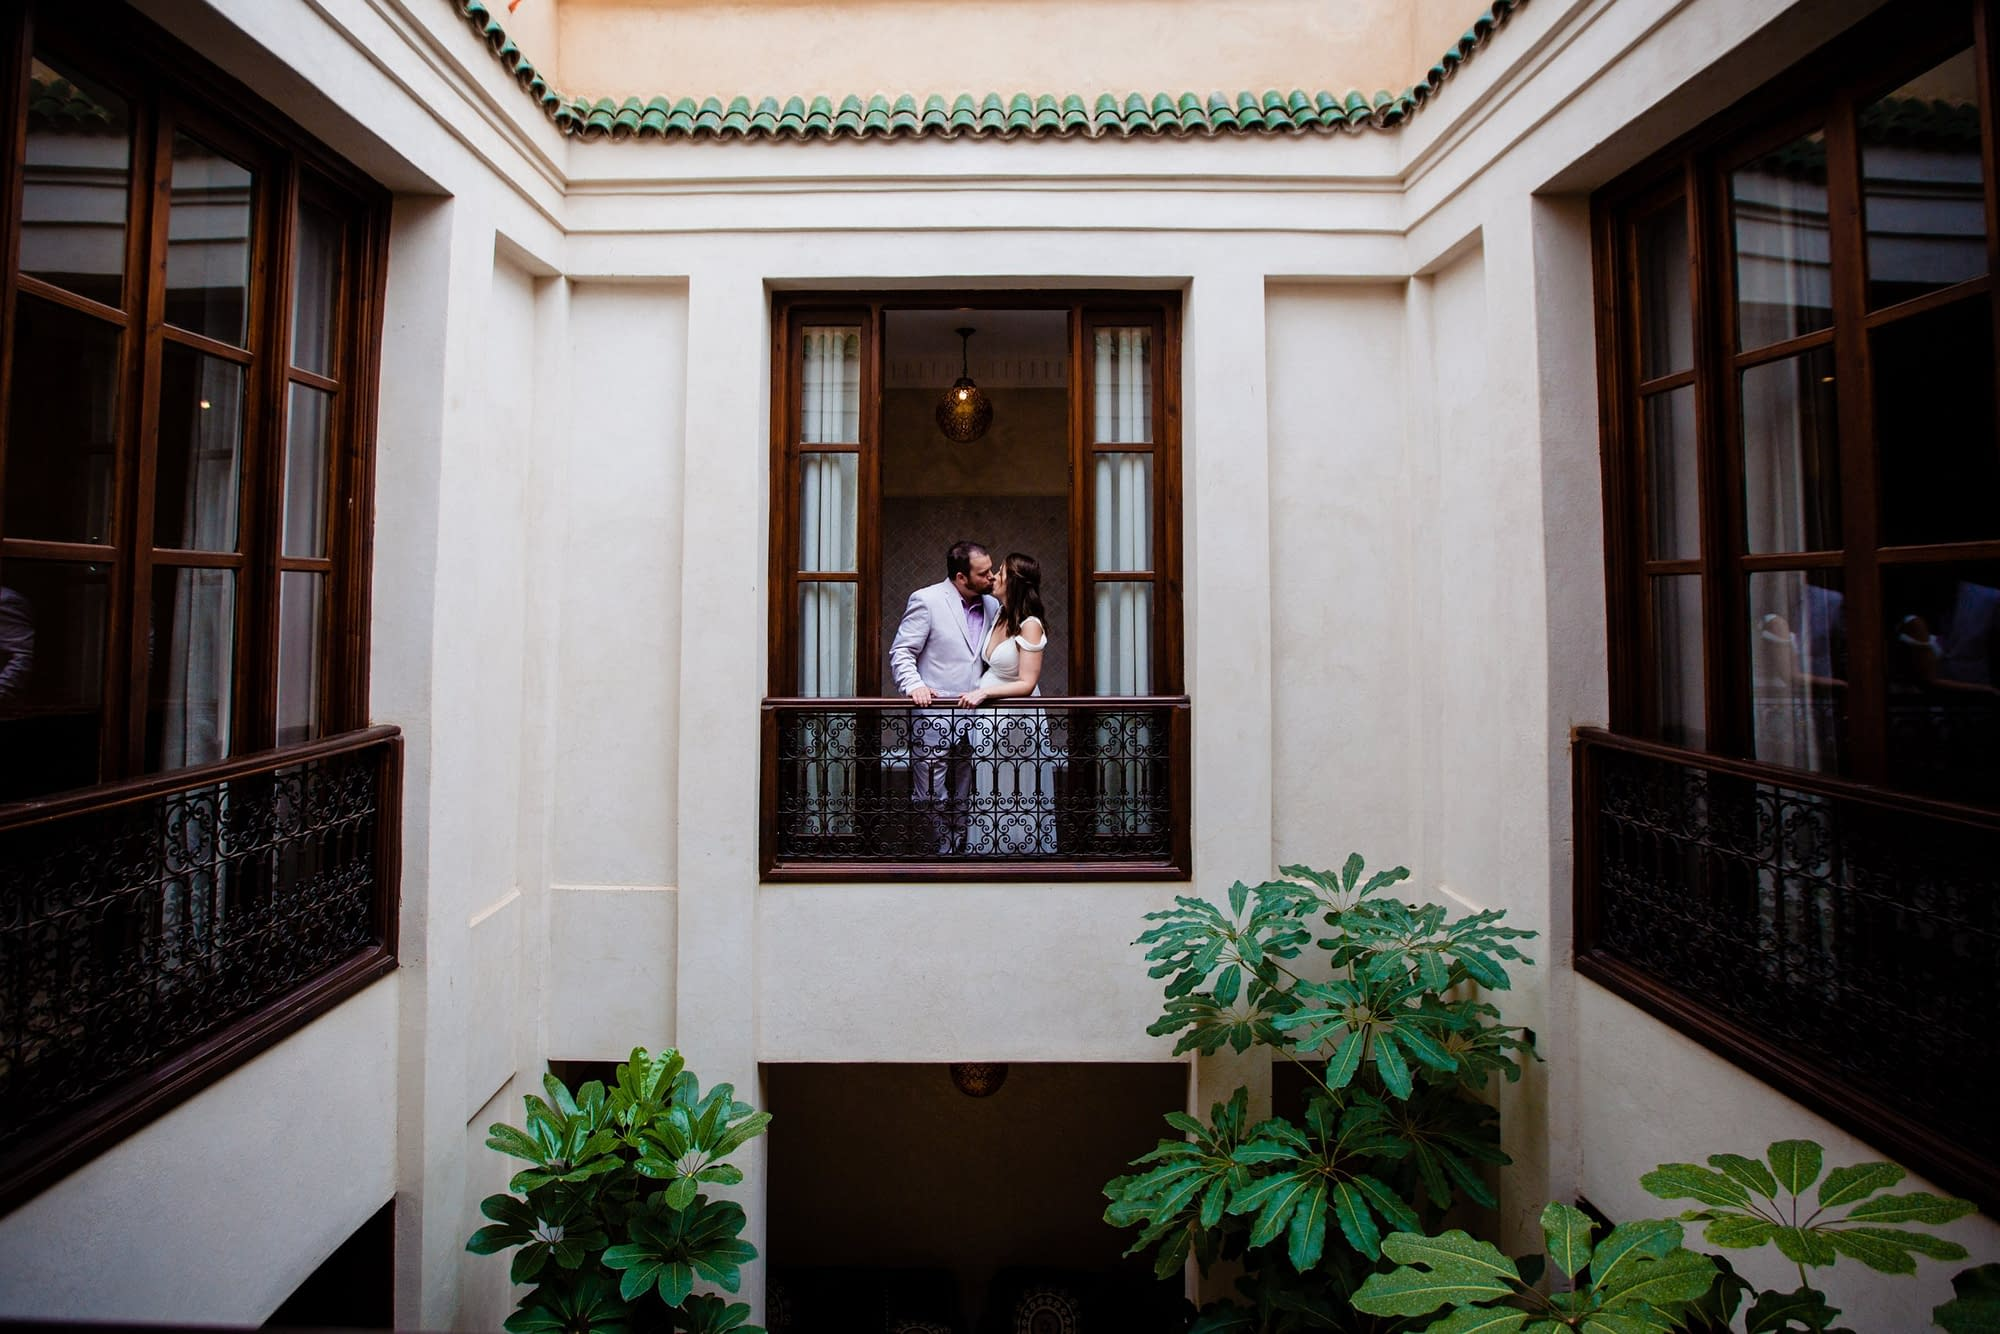 Chris & Cassie's beautiful destination wedding photography at Marrakech riad